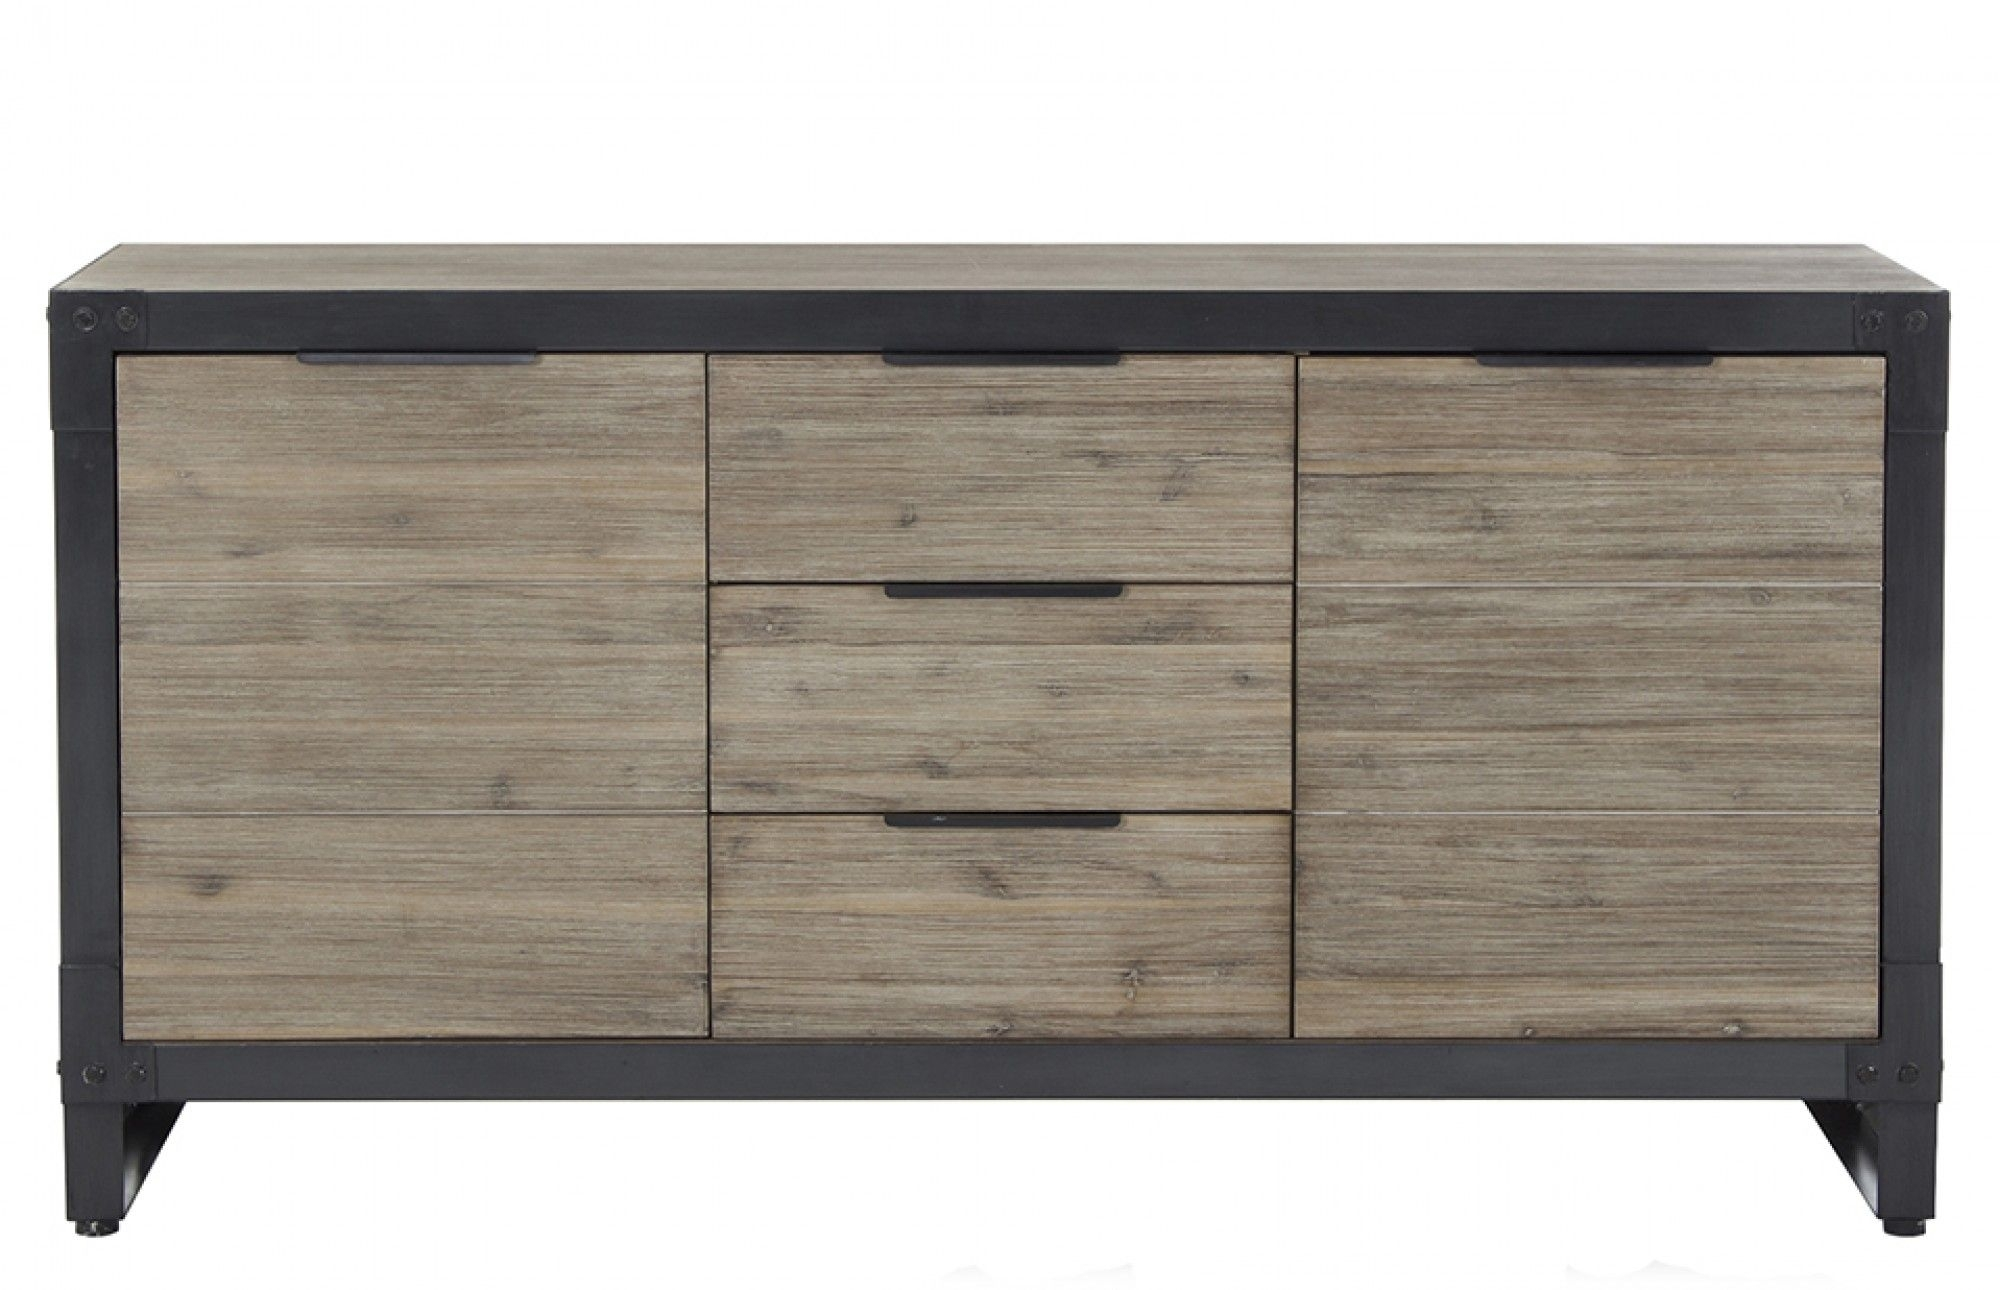 Brunel - Sideboard | Pinterest | Drawers, Hardware And Industrial pertaining to 3-Drawer/2-Door White Wash Sideboards (Image 2 of 30)